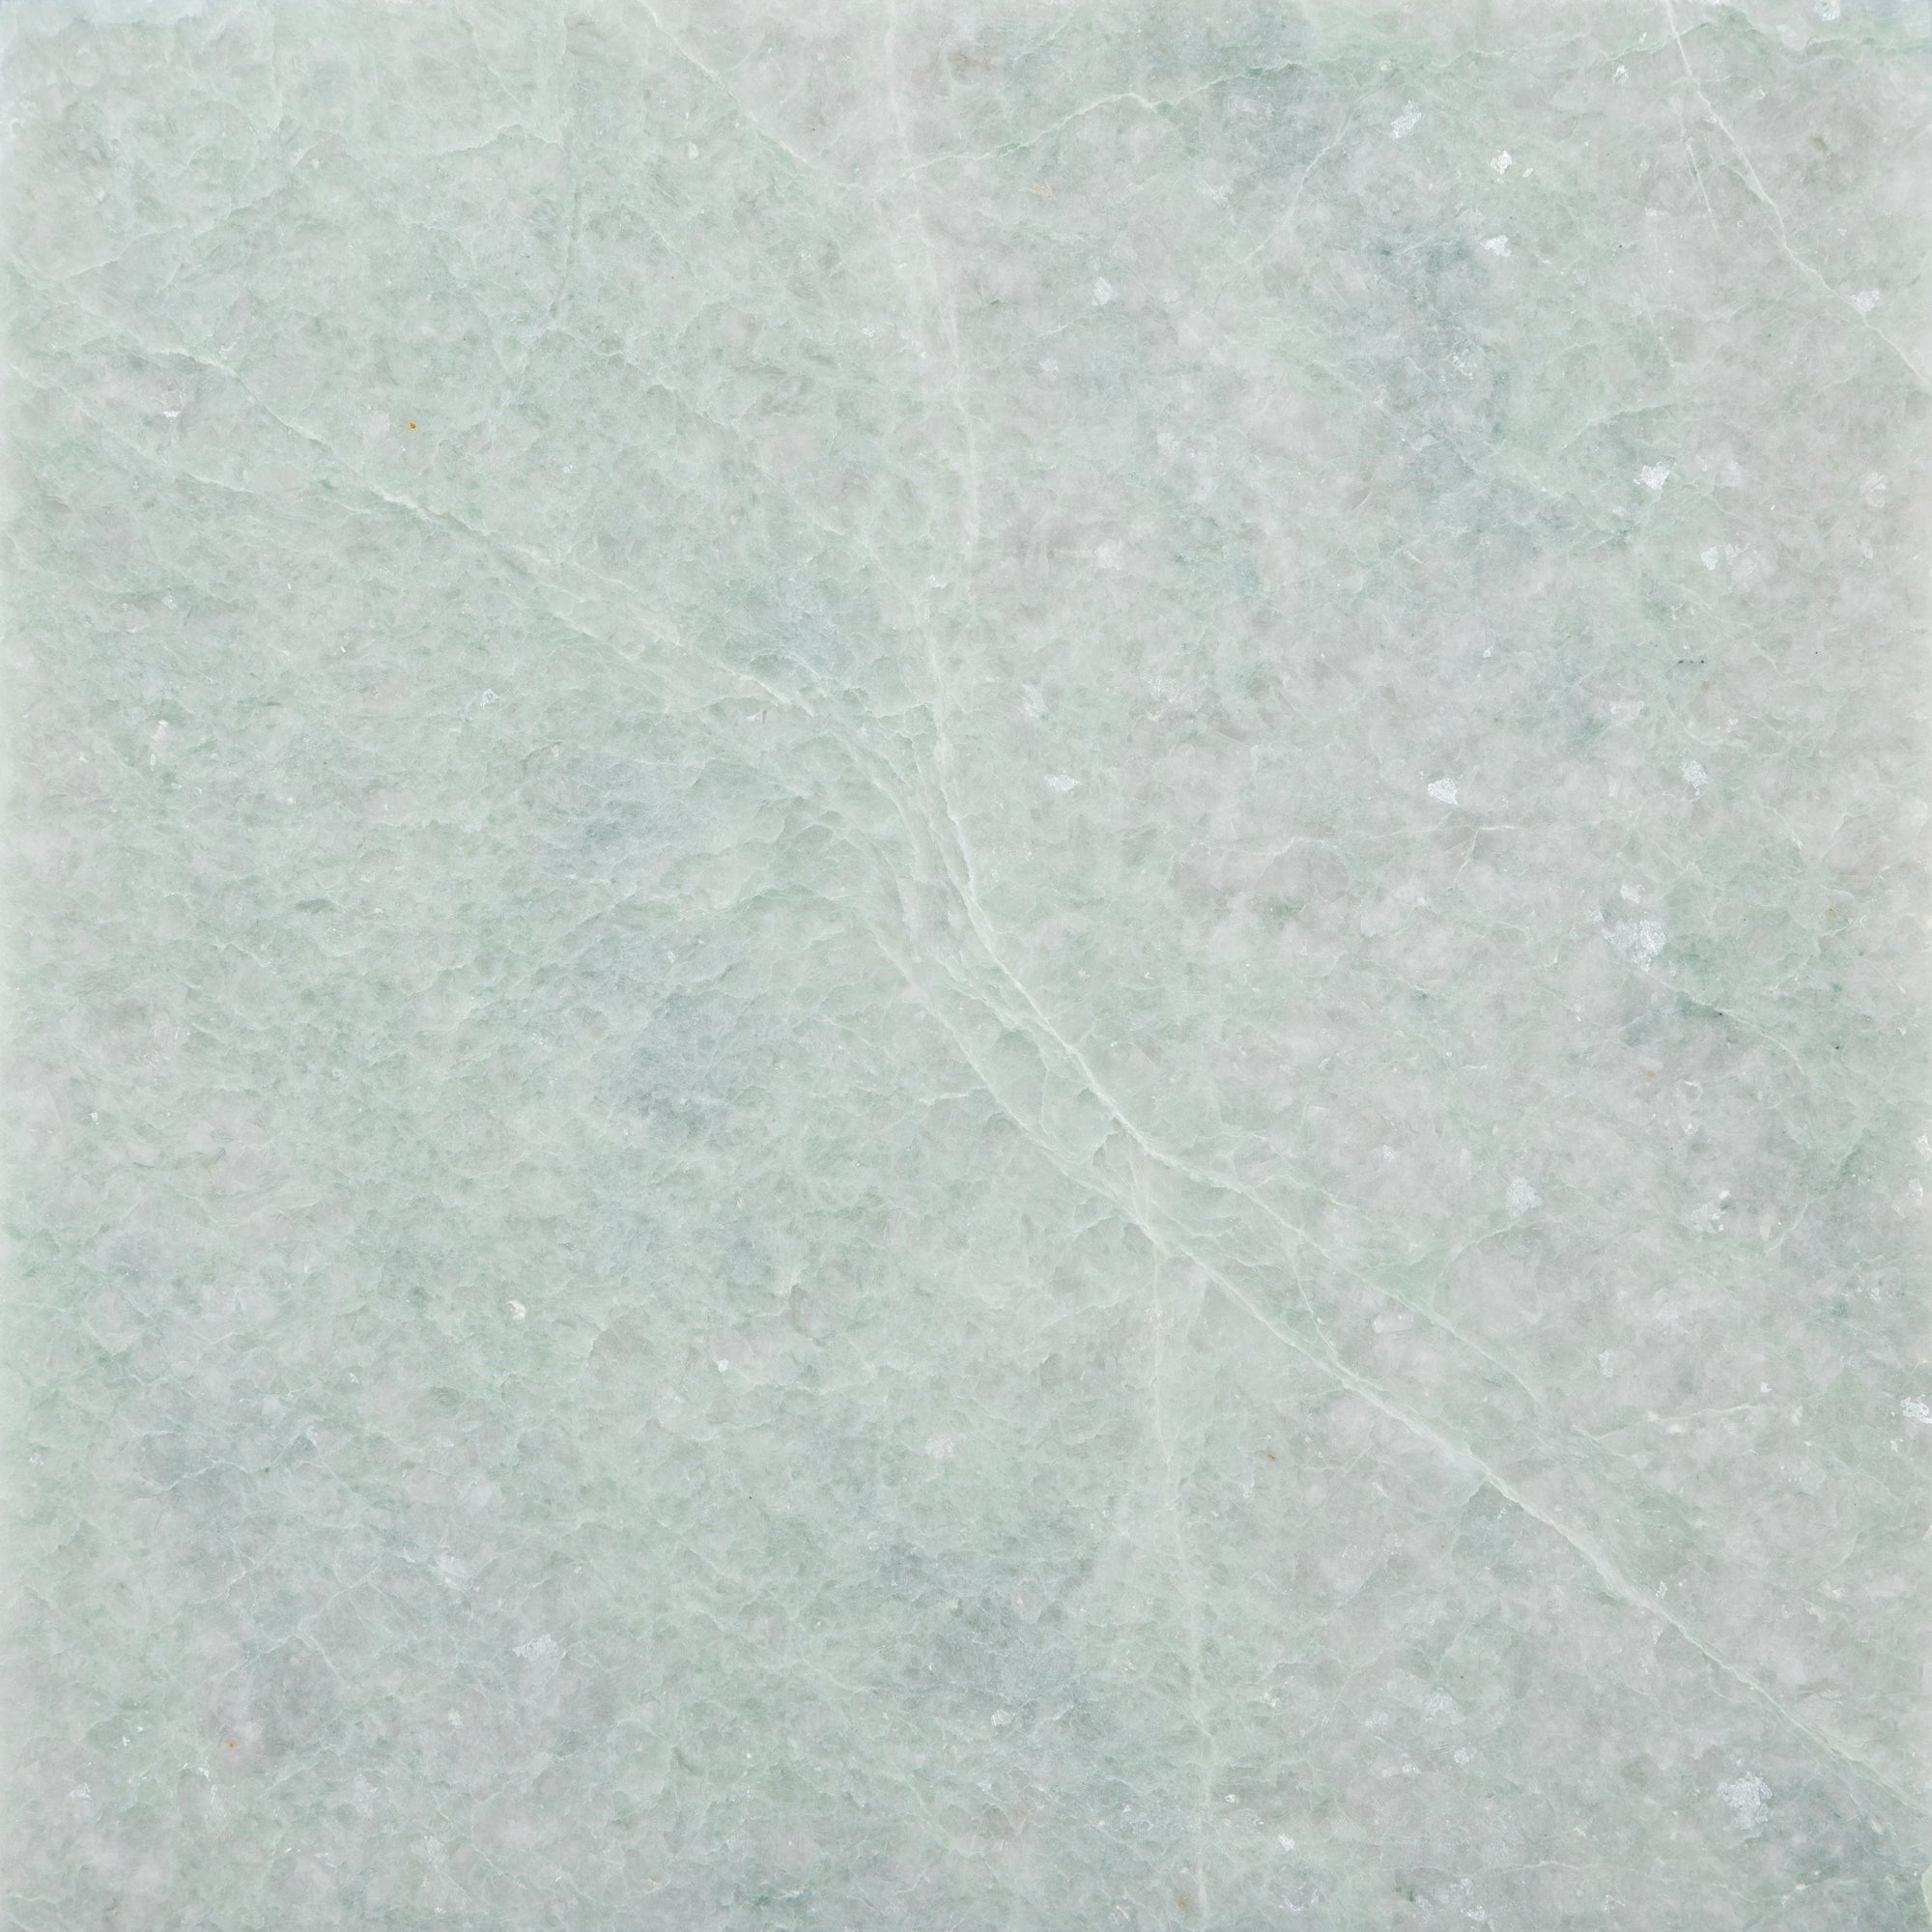 Ming Green Marble Swatch Card  Polished 12 x 12 x 3/8